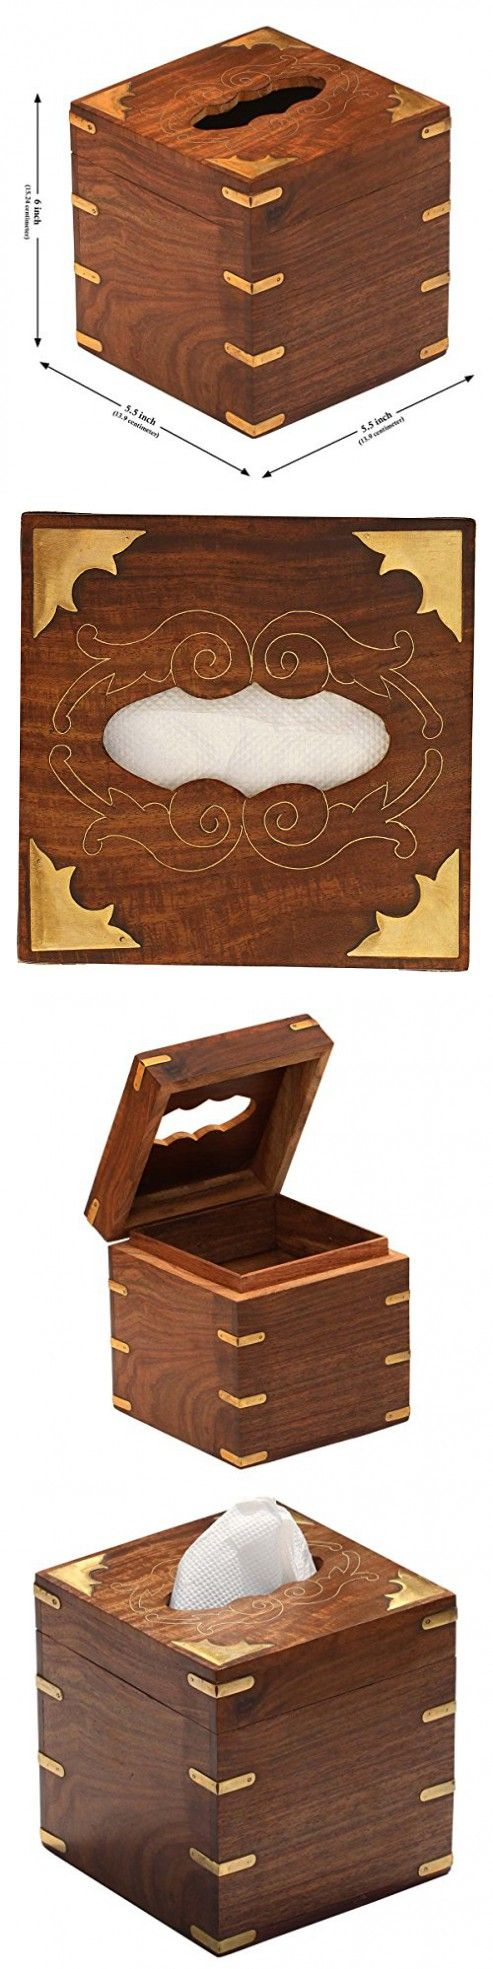 Javi Handmade Wooden Facial Tissue Box Cover Holder with Brass Work Home Decor and Lovely Gift Idea